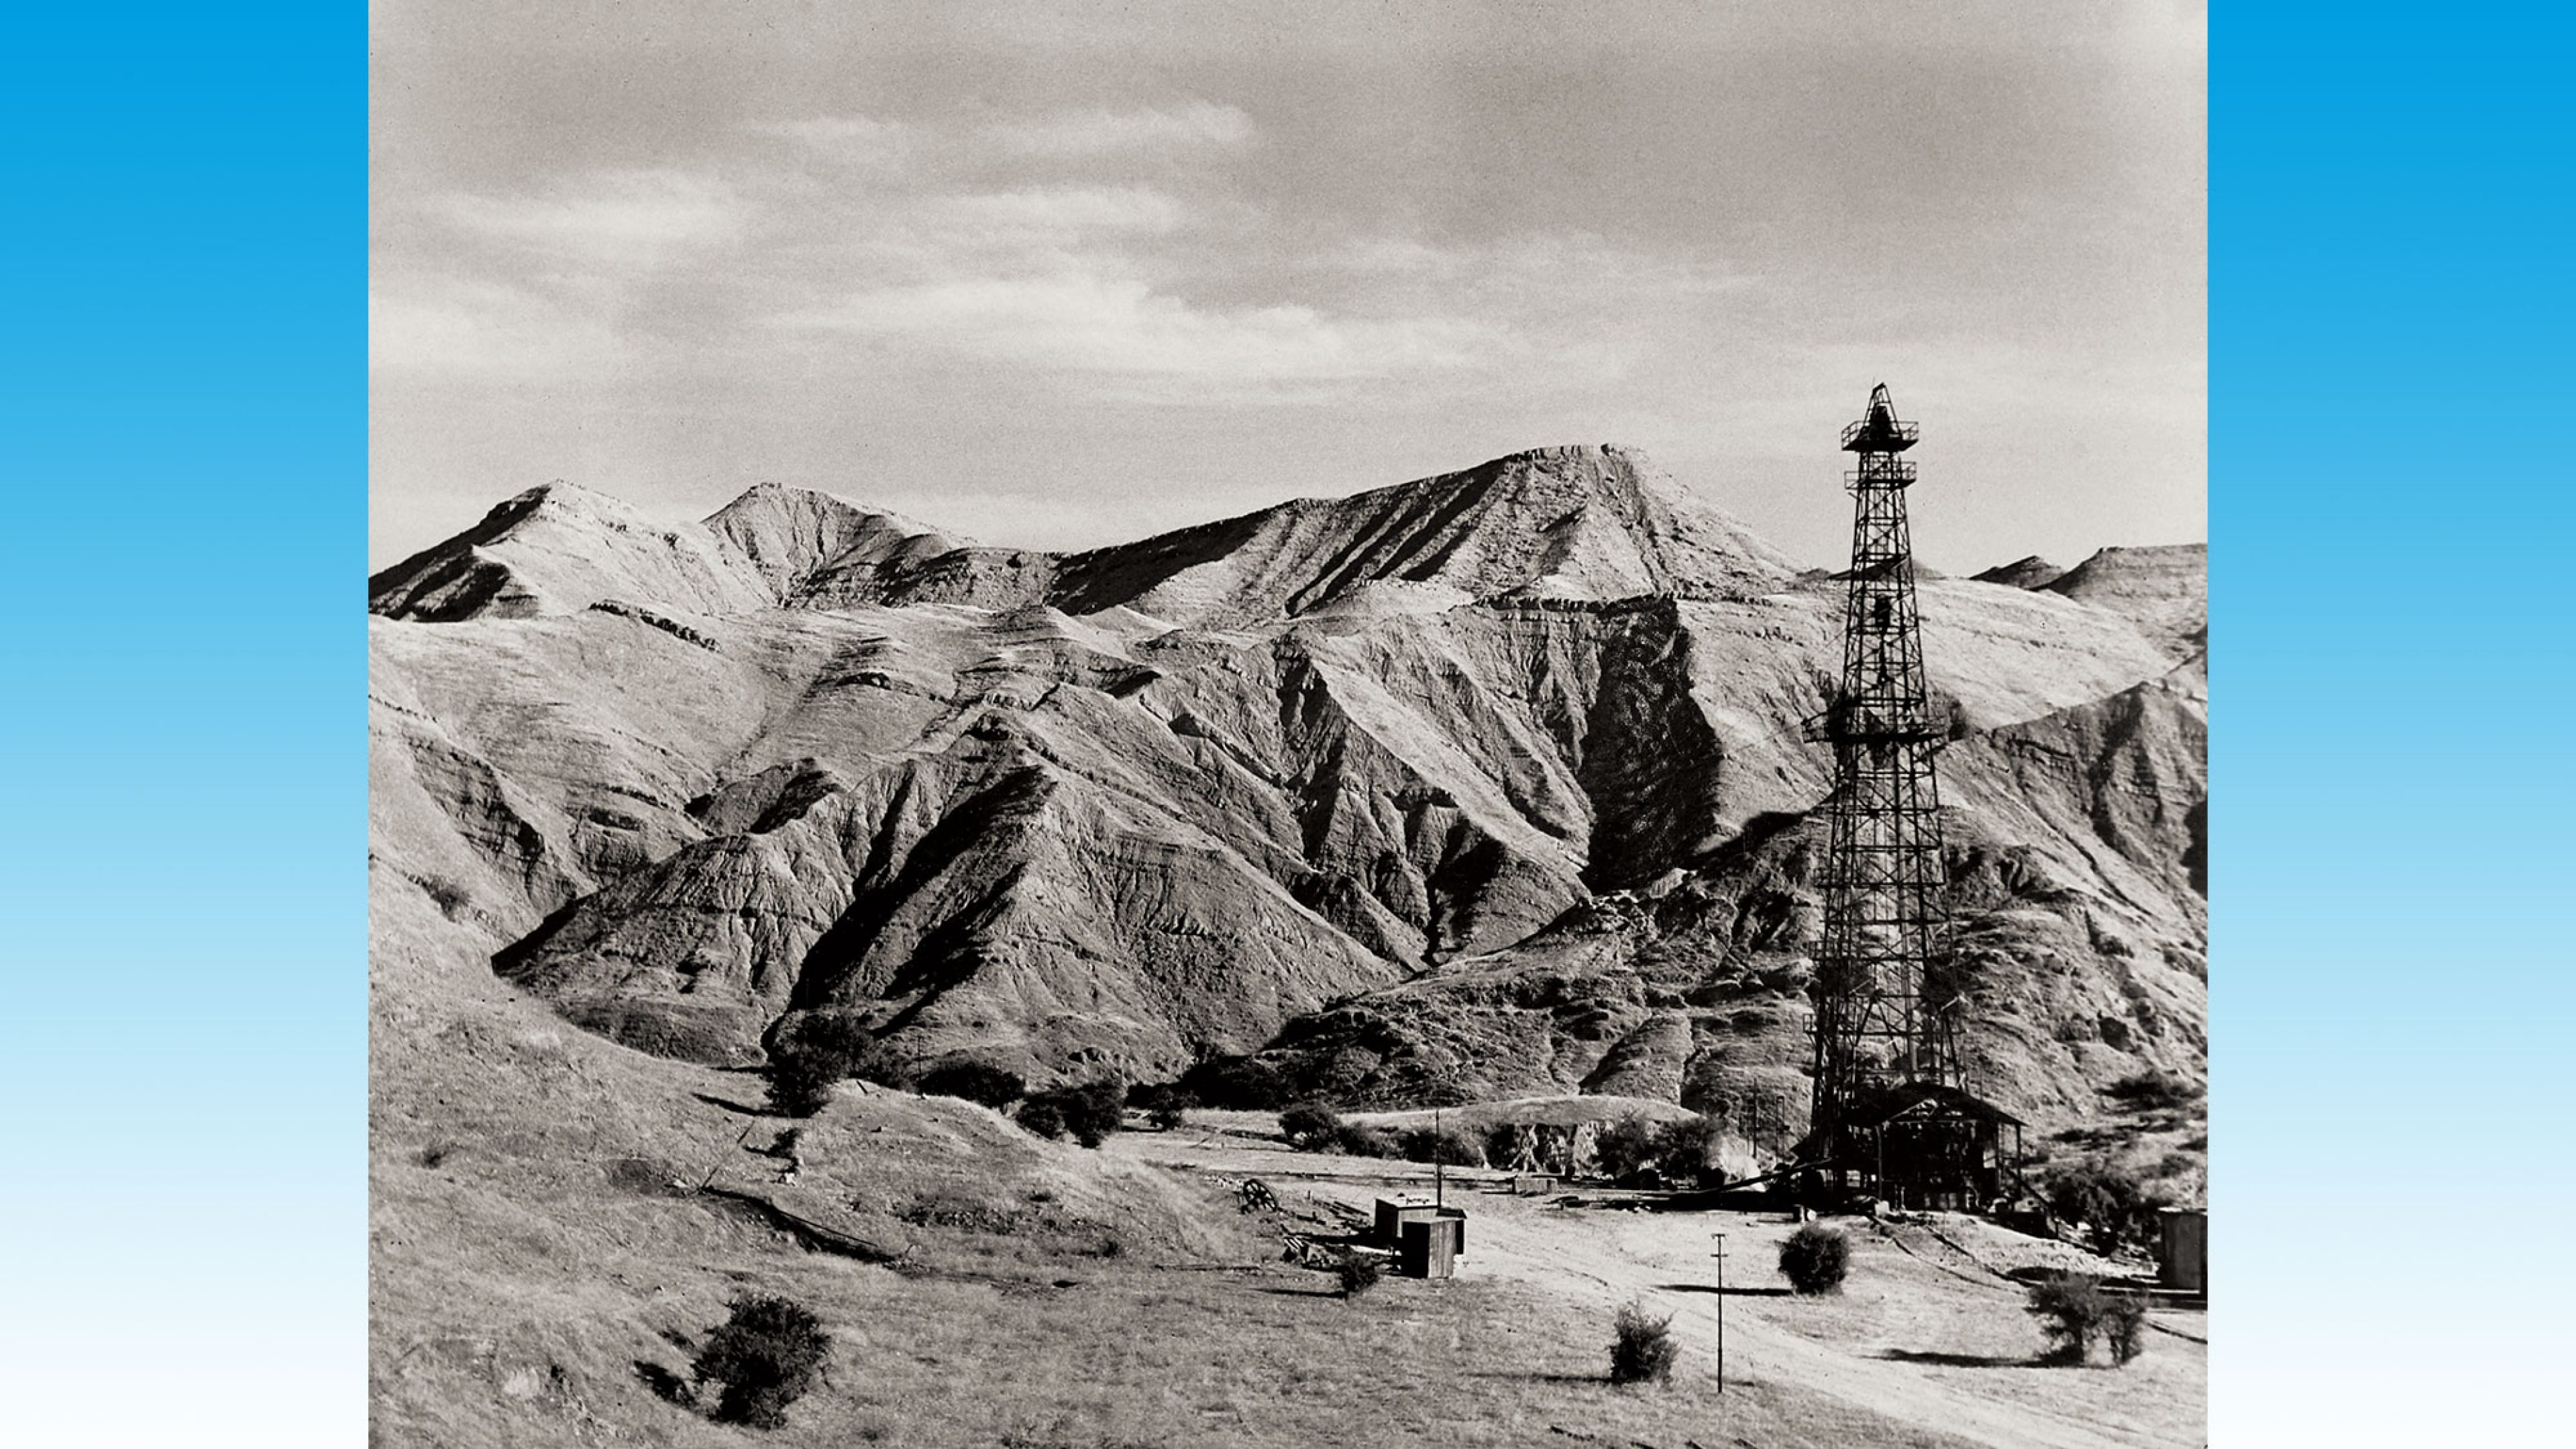 The Lali oilfield in the foothills of the Zagros mountains in south western Iran, one of the several oilfields discovered by BP in Persia - renamed Iran in 1935